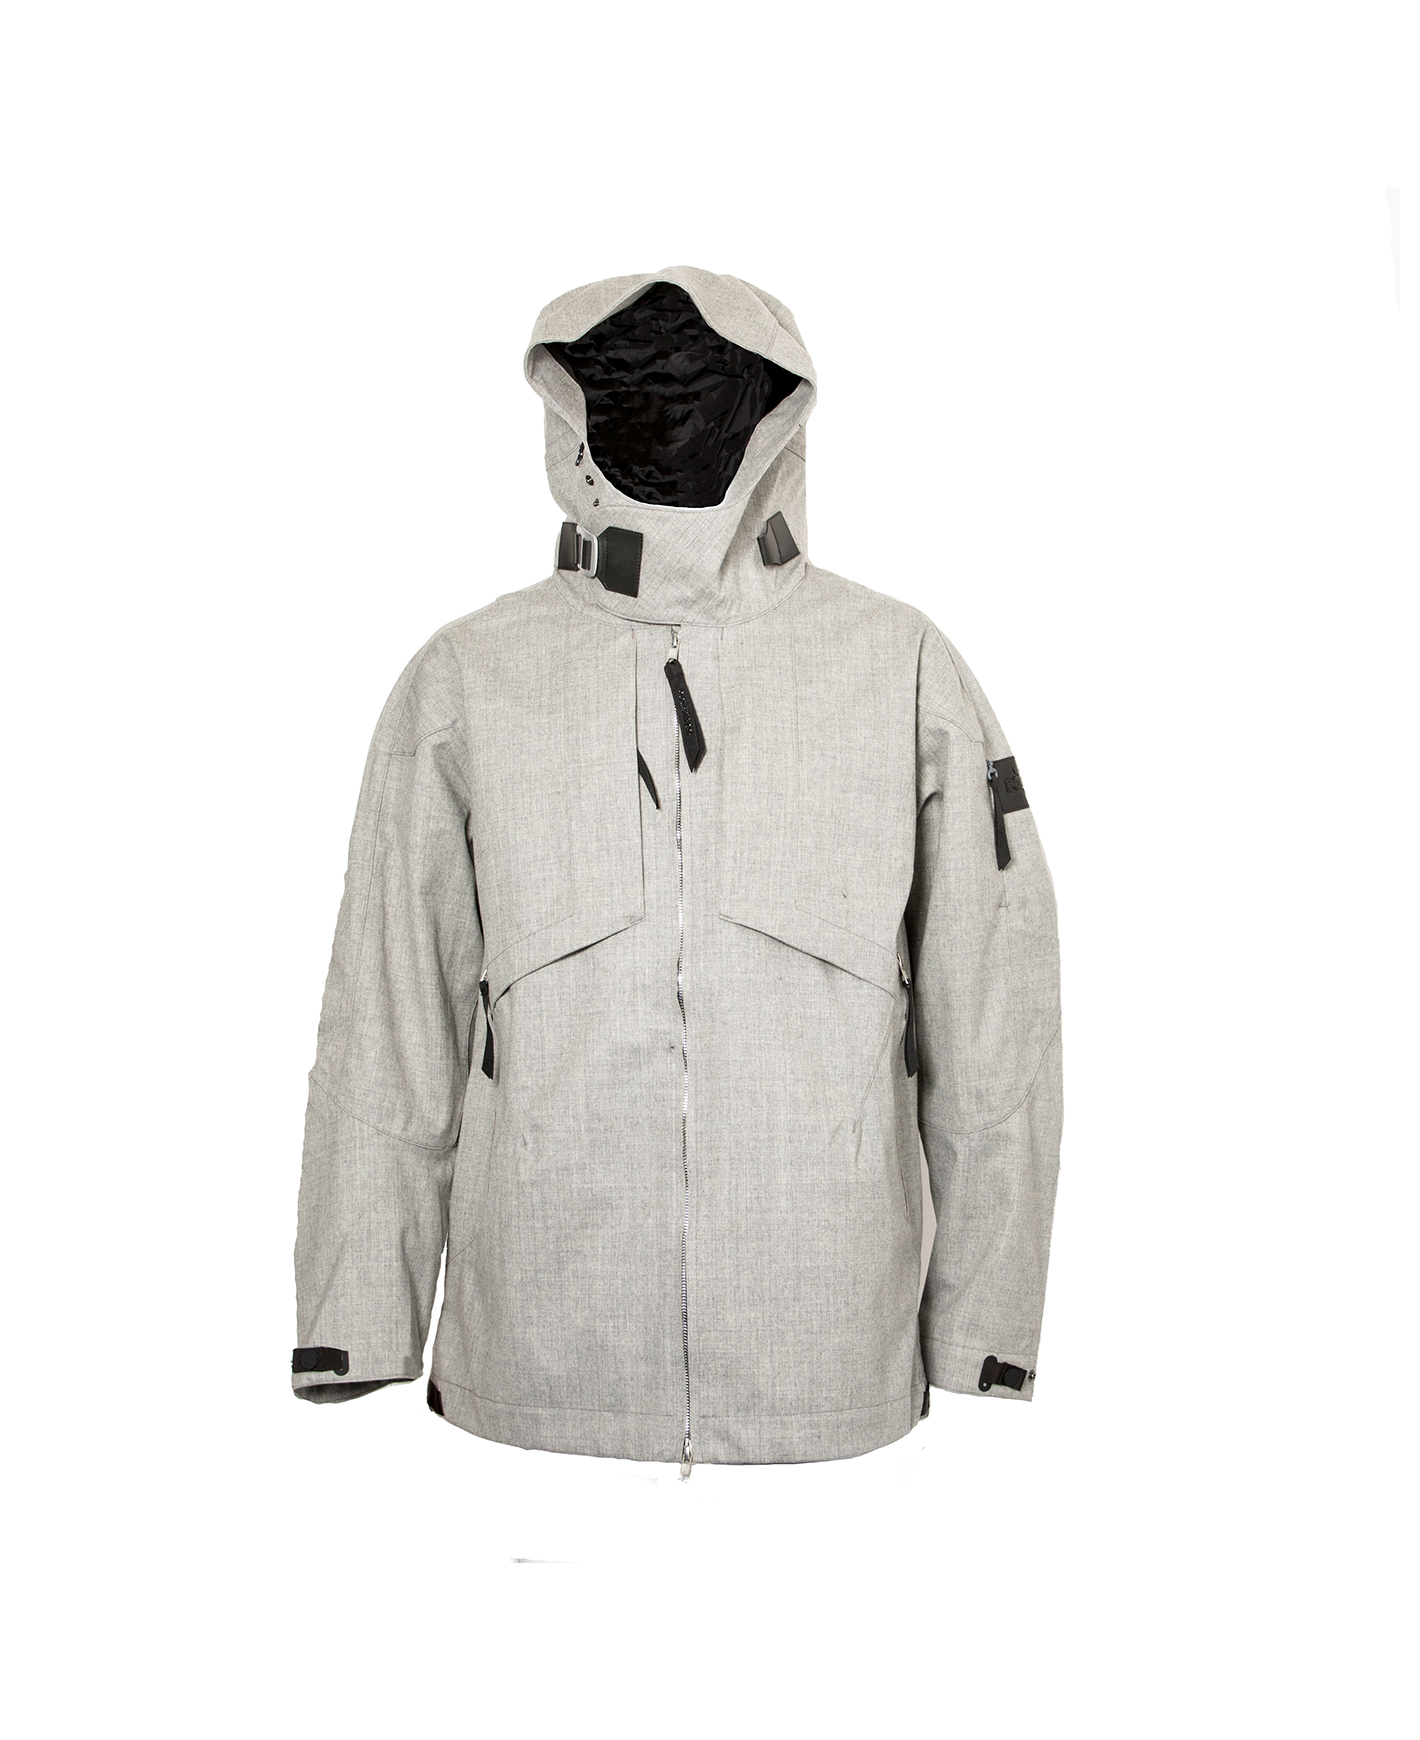 WATER PROOF WOOL JACKET